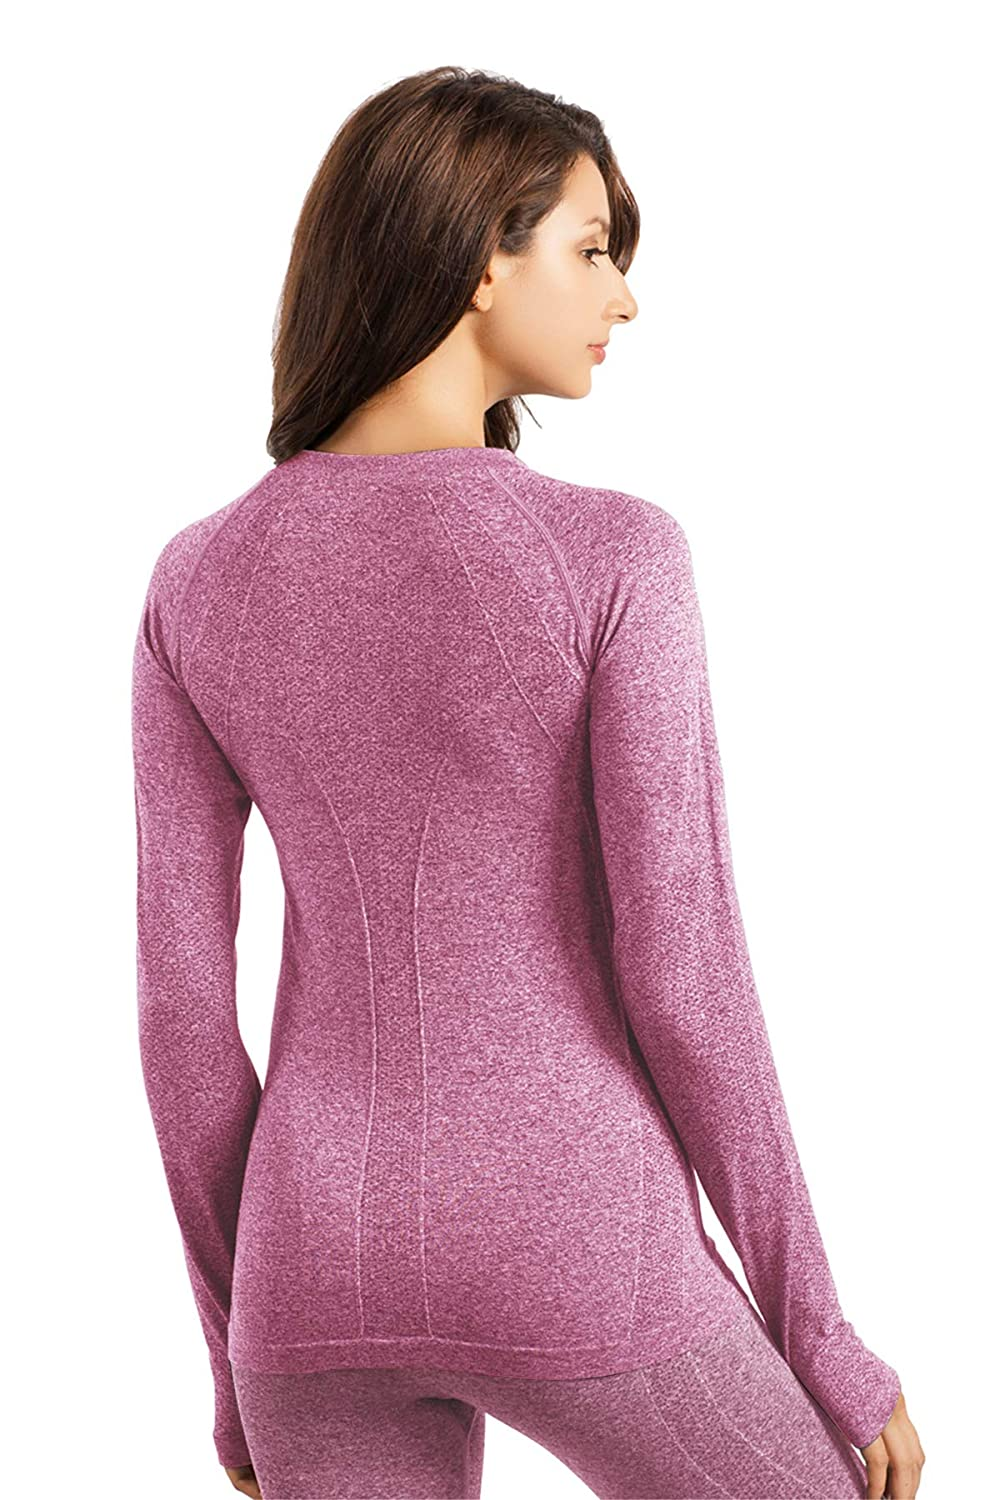 +MD Womens Seamless Crew Neck Long Sleeve T-Shirt Thumb Hole Thermal Underwear Shirt Base Layer Top Tee